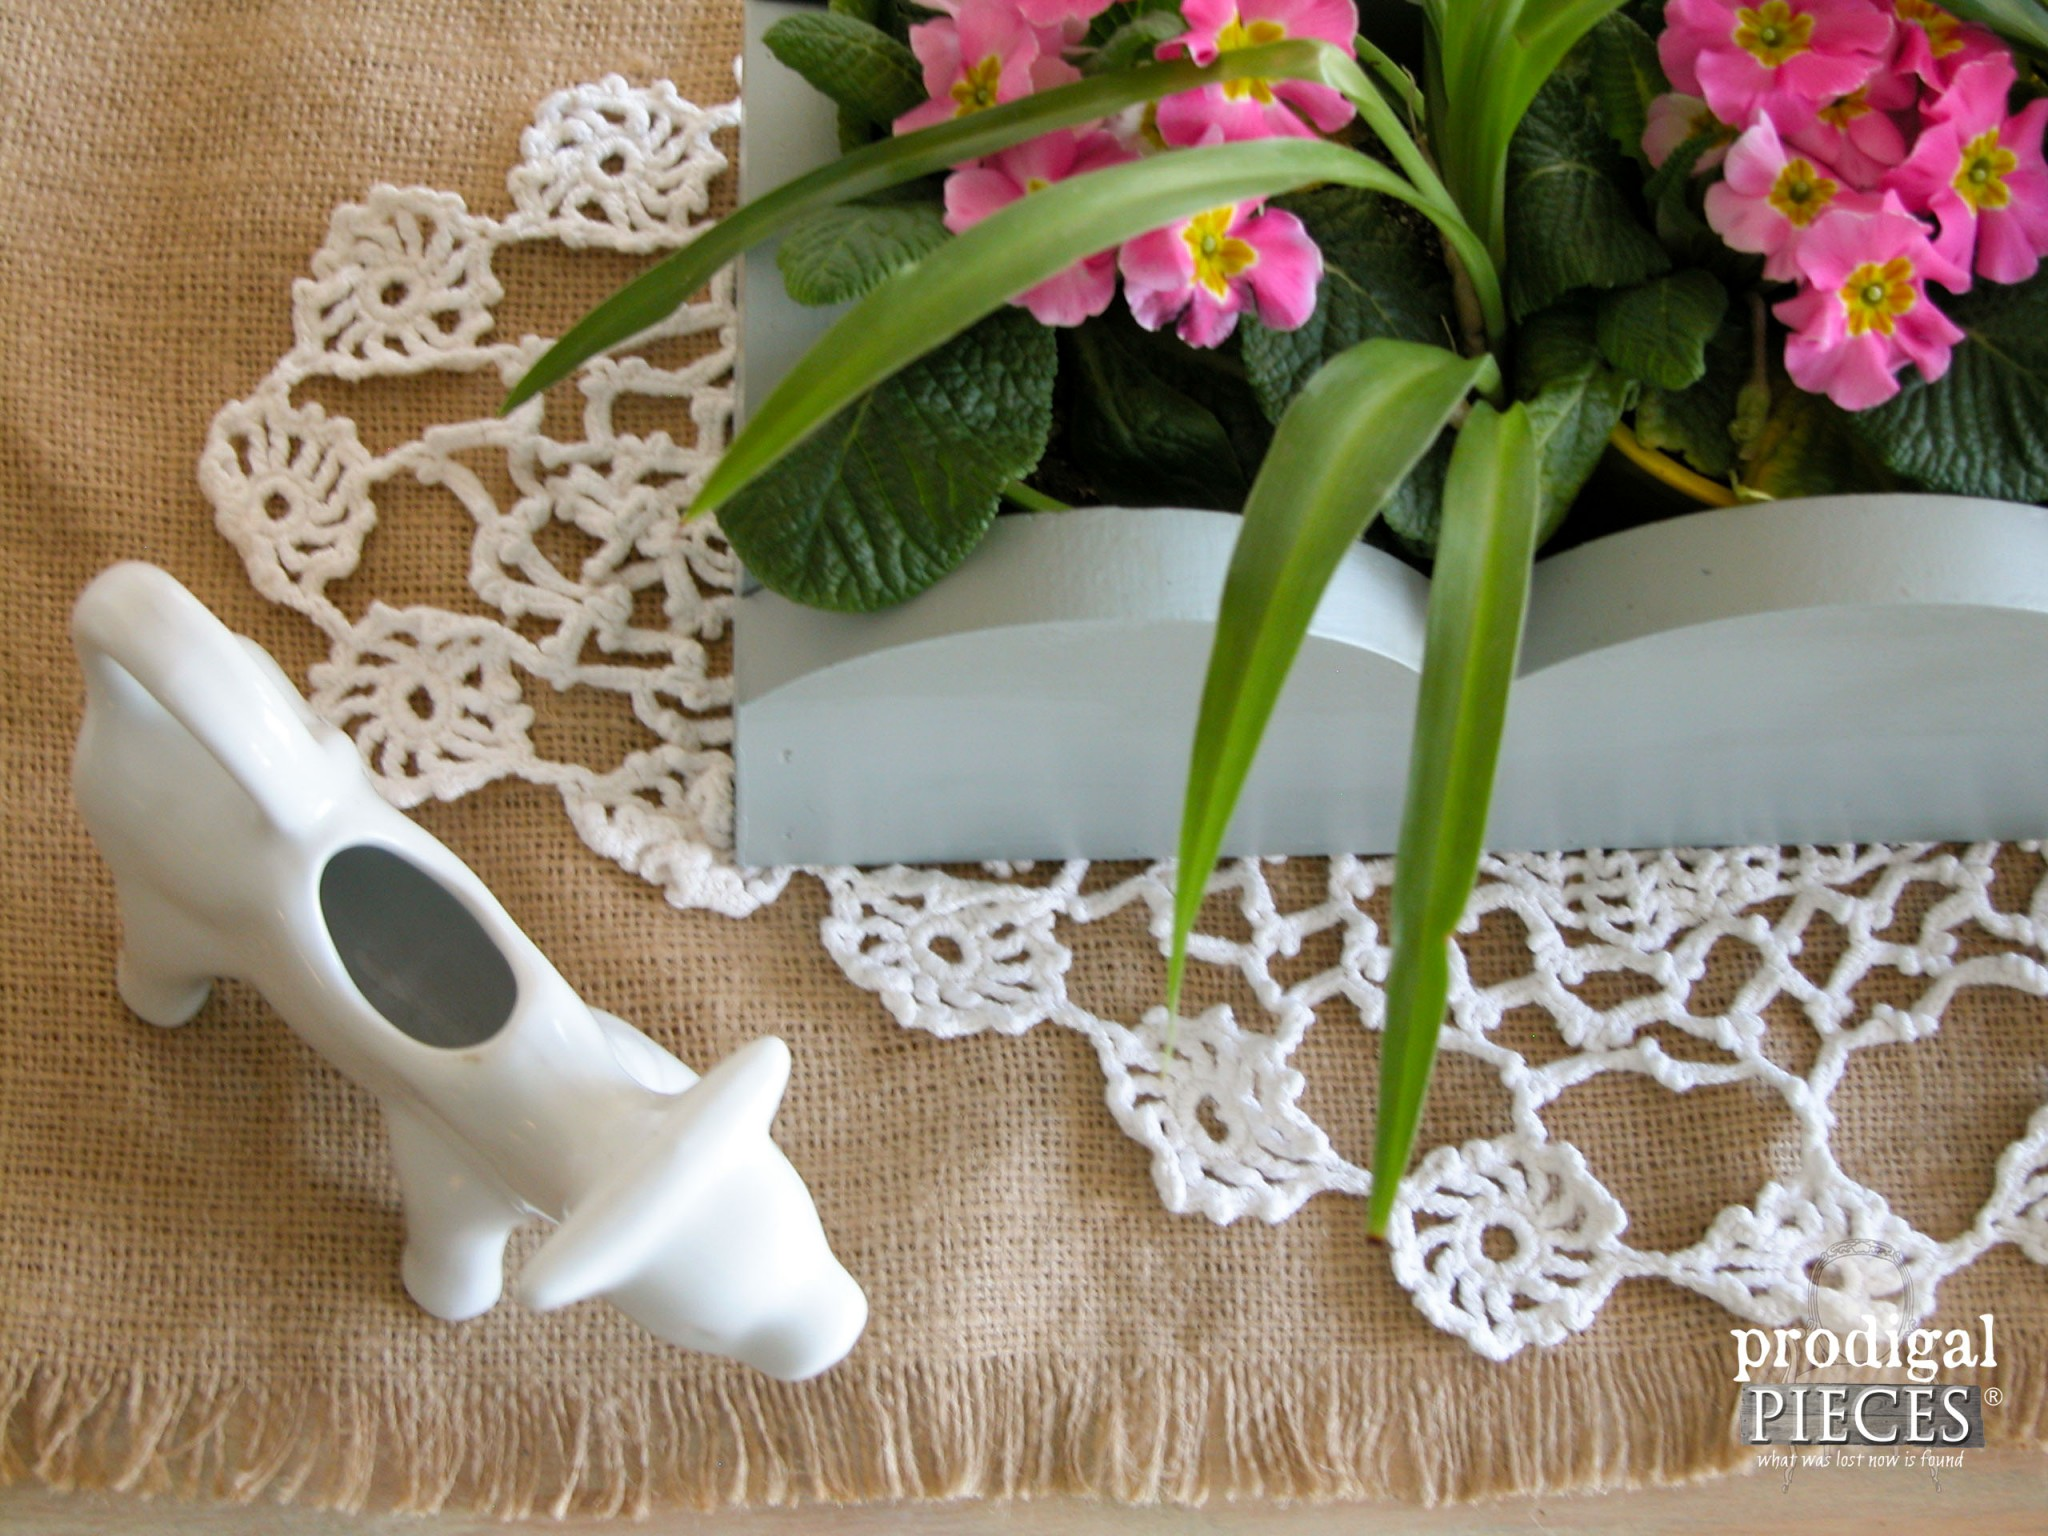 Top View of Repurposed Valance Centerpiece by Prodigal Pieces | www.prodigalpieces.com